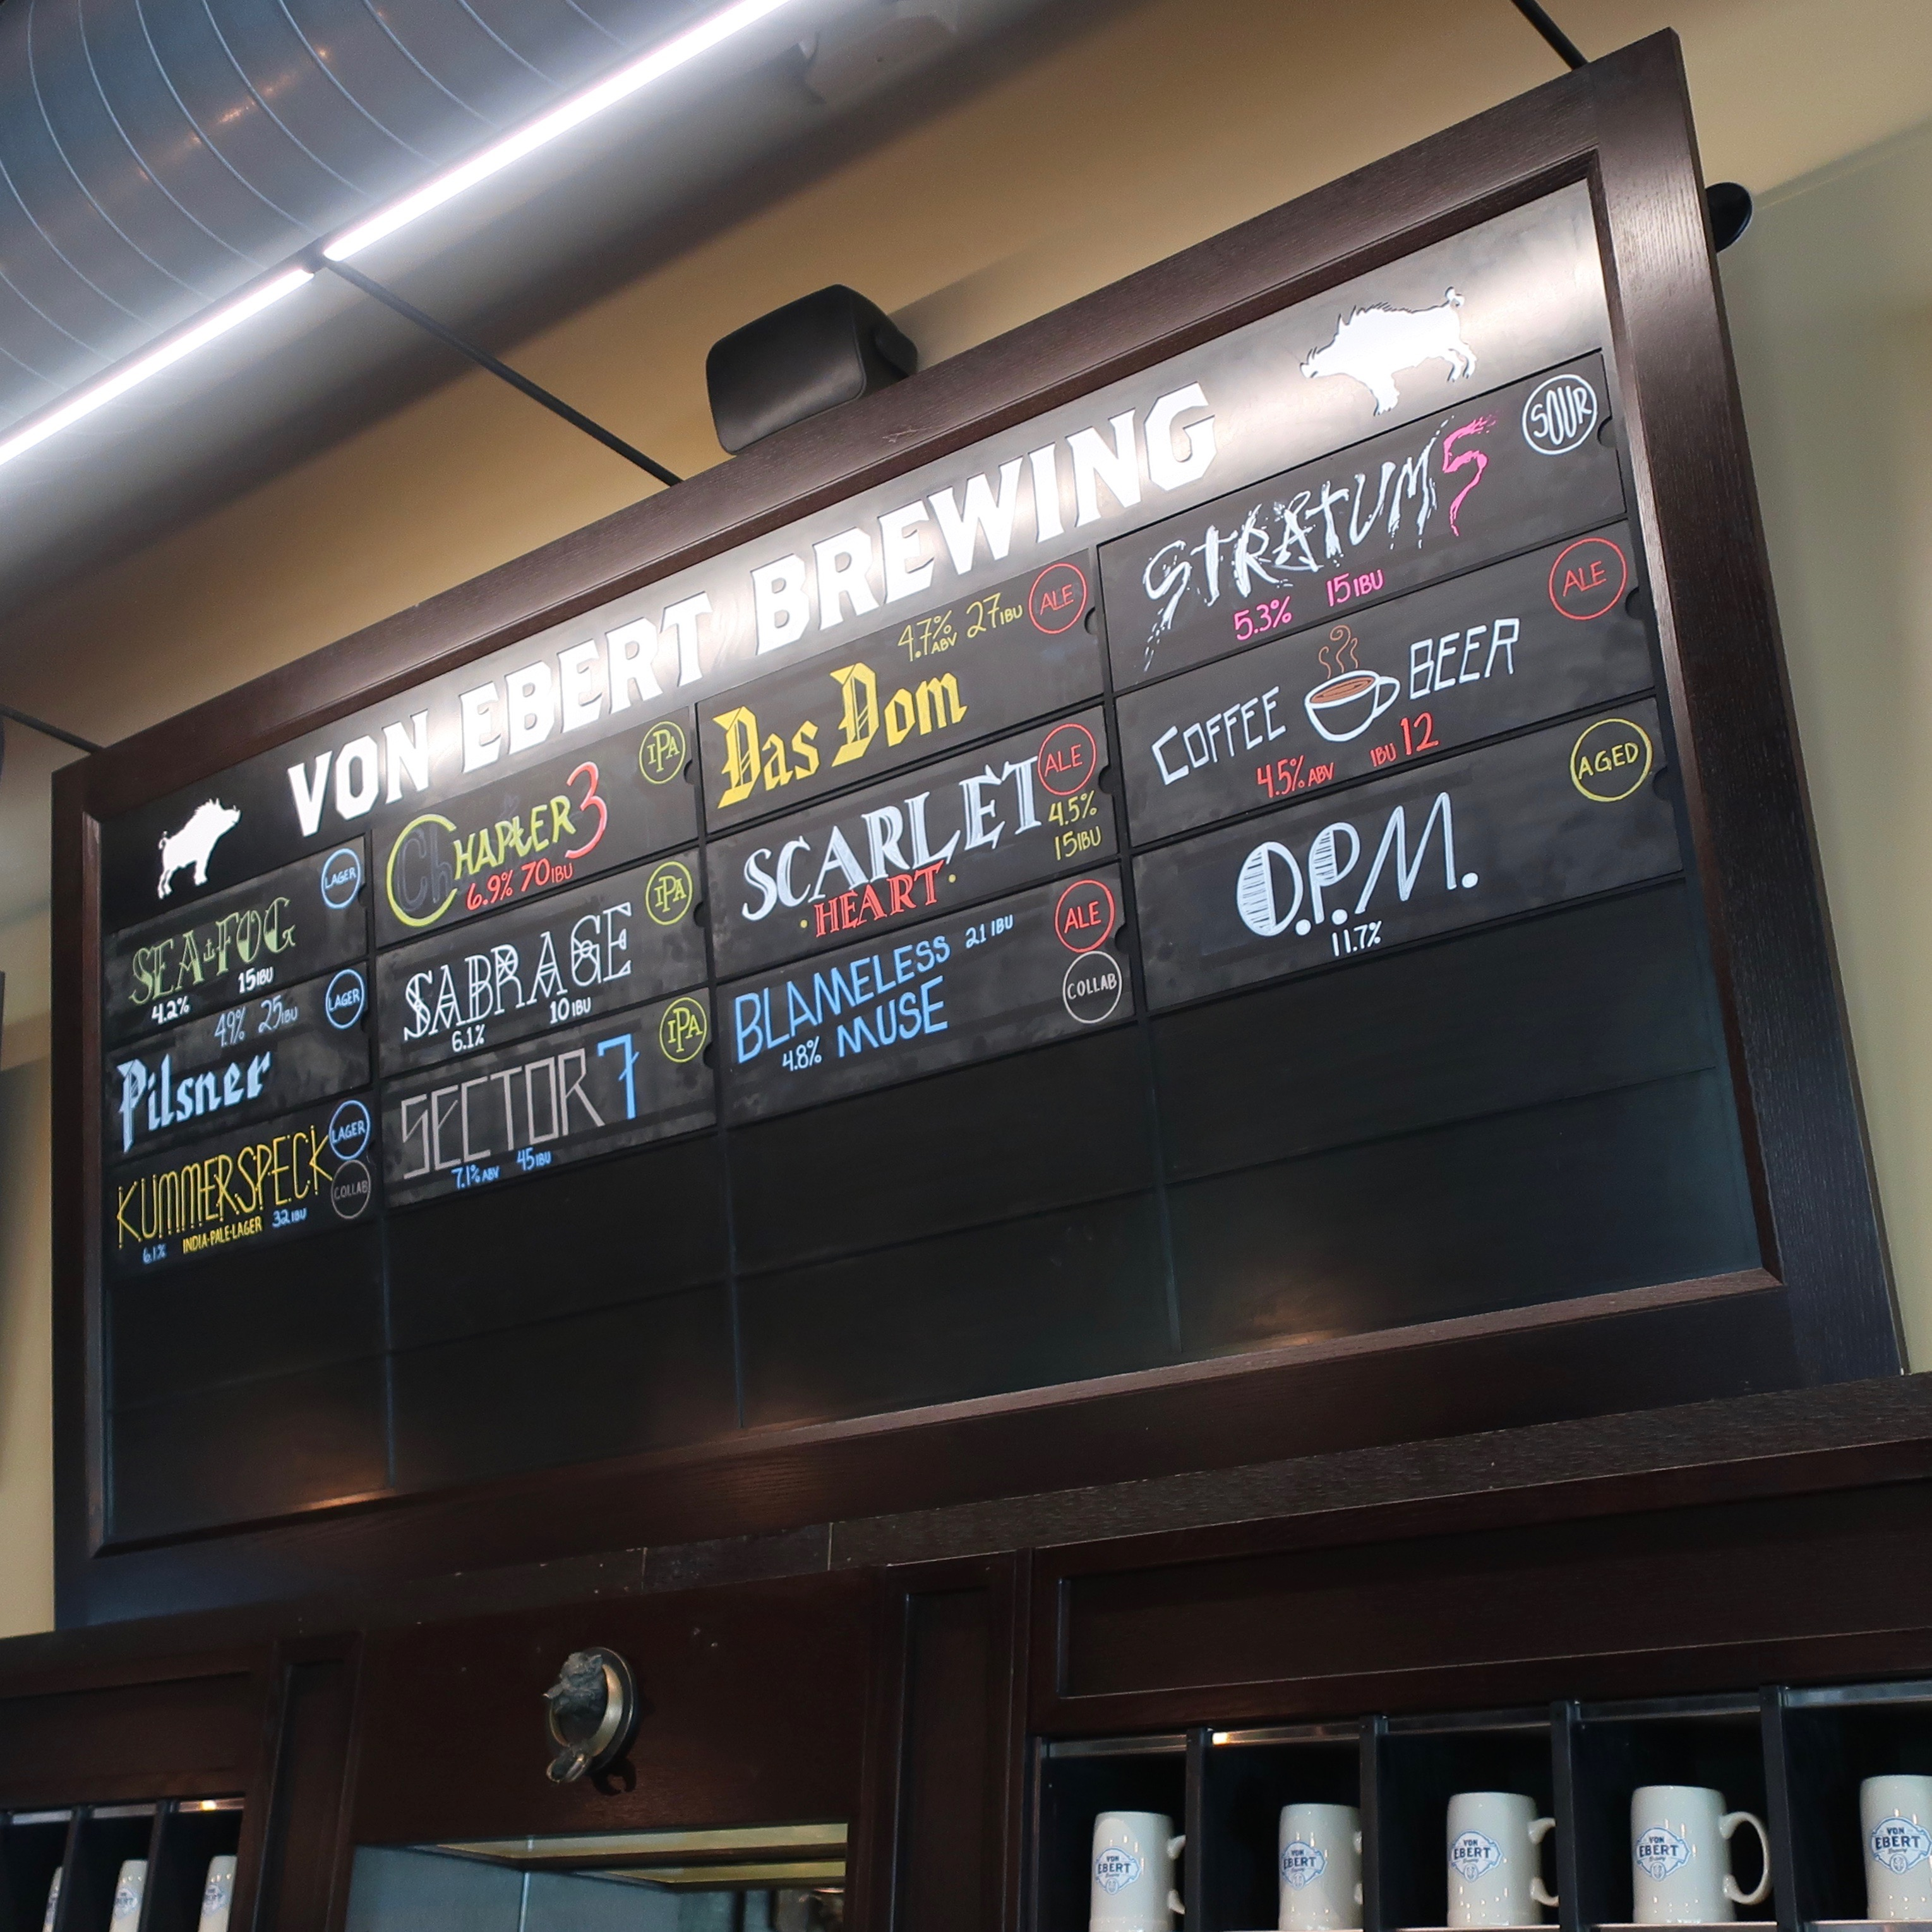 The Von Ebert Brewing beer menu board at Von Ebert Brewing - East.